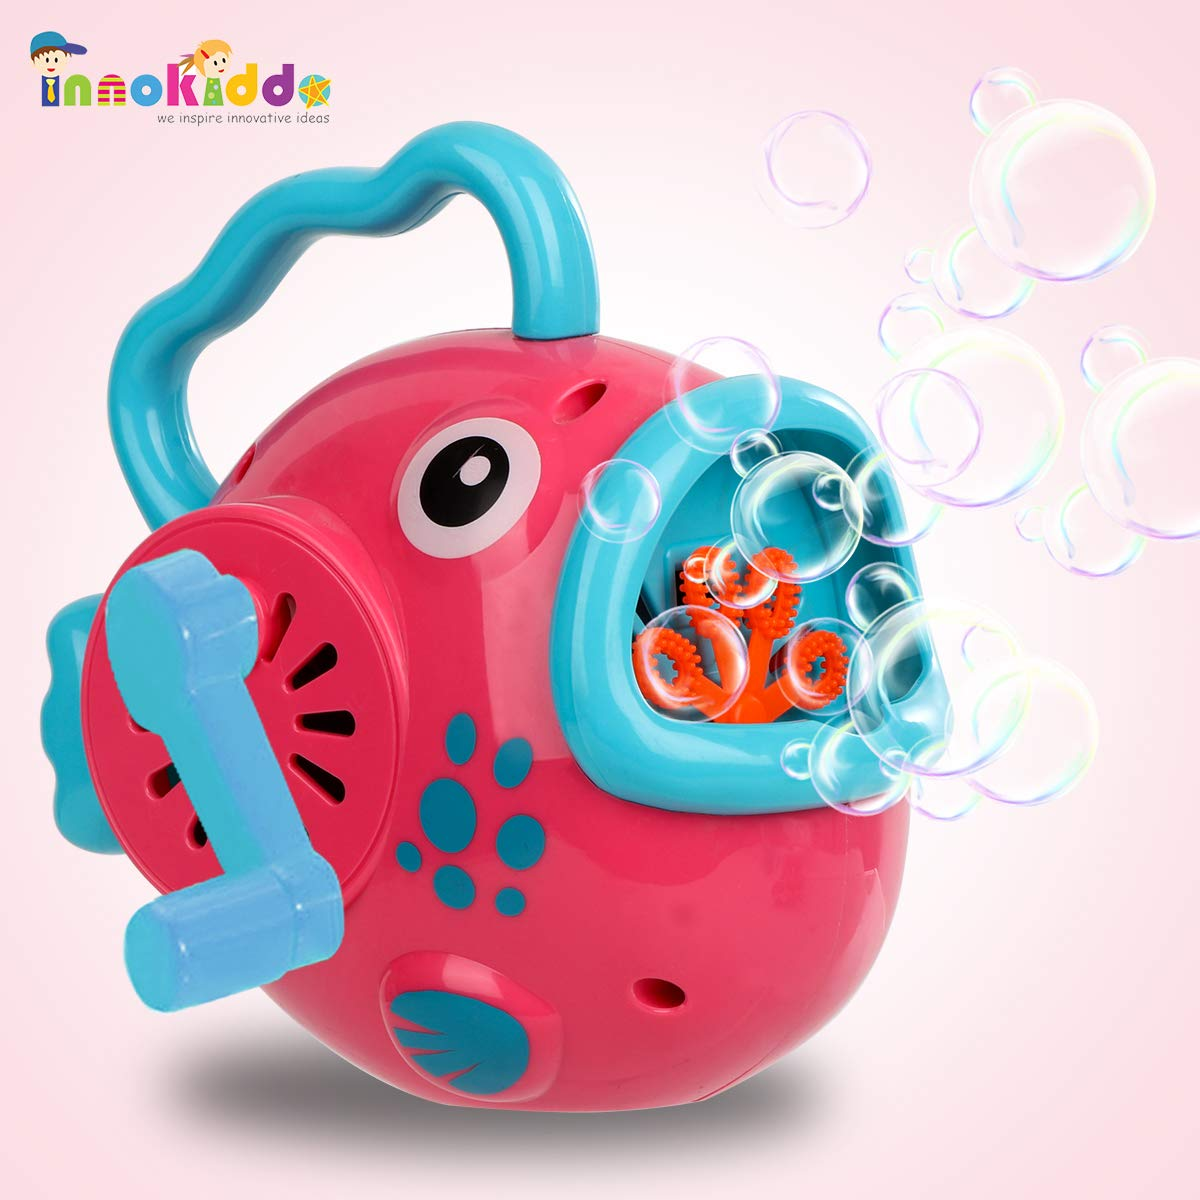 Hand-Controlled Fish Bubble Machine for Kids, Bubbles Blower Toy with Bubble Solution, No Batteries Needed, Fun all season kids outdoor toys. Activity for Boys&Girls&Toddlers, Best Gift Idea